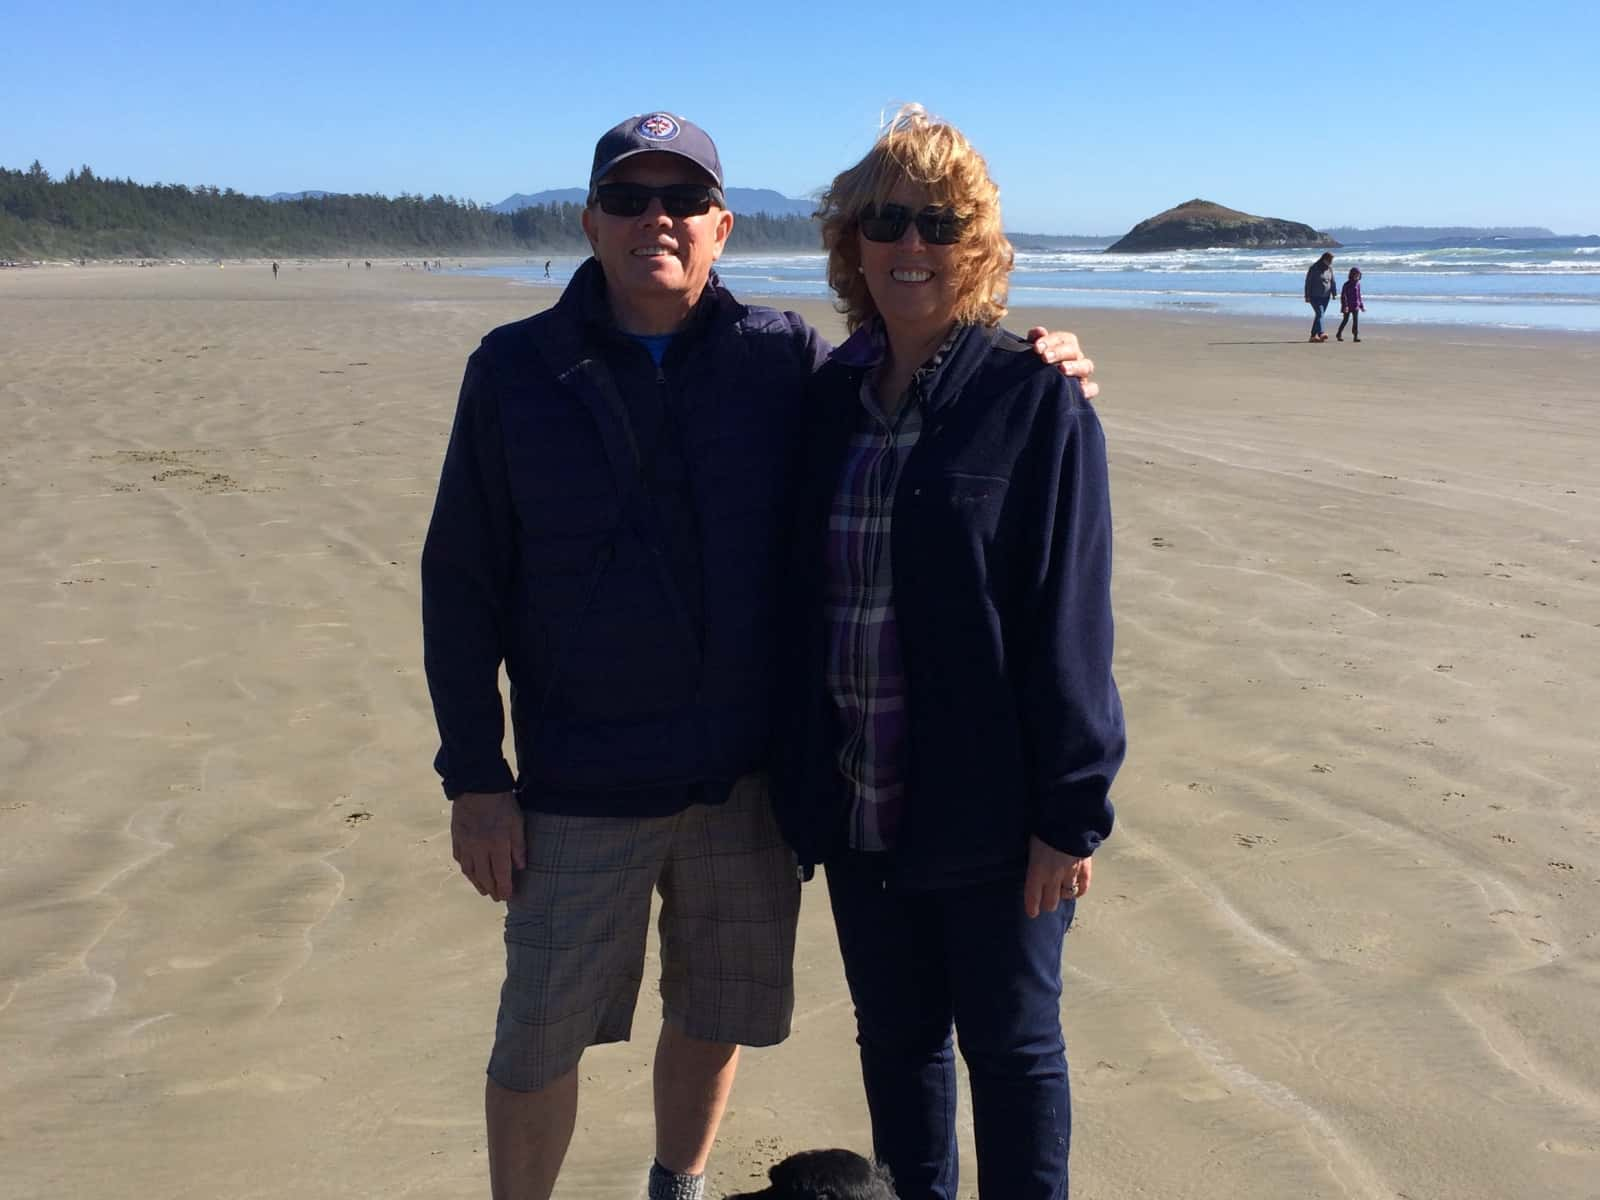 Jack & Gail from Vancouver, British Columbia, Canada